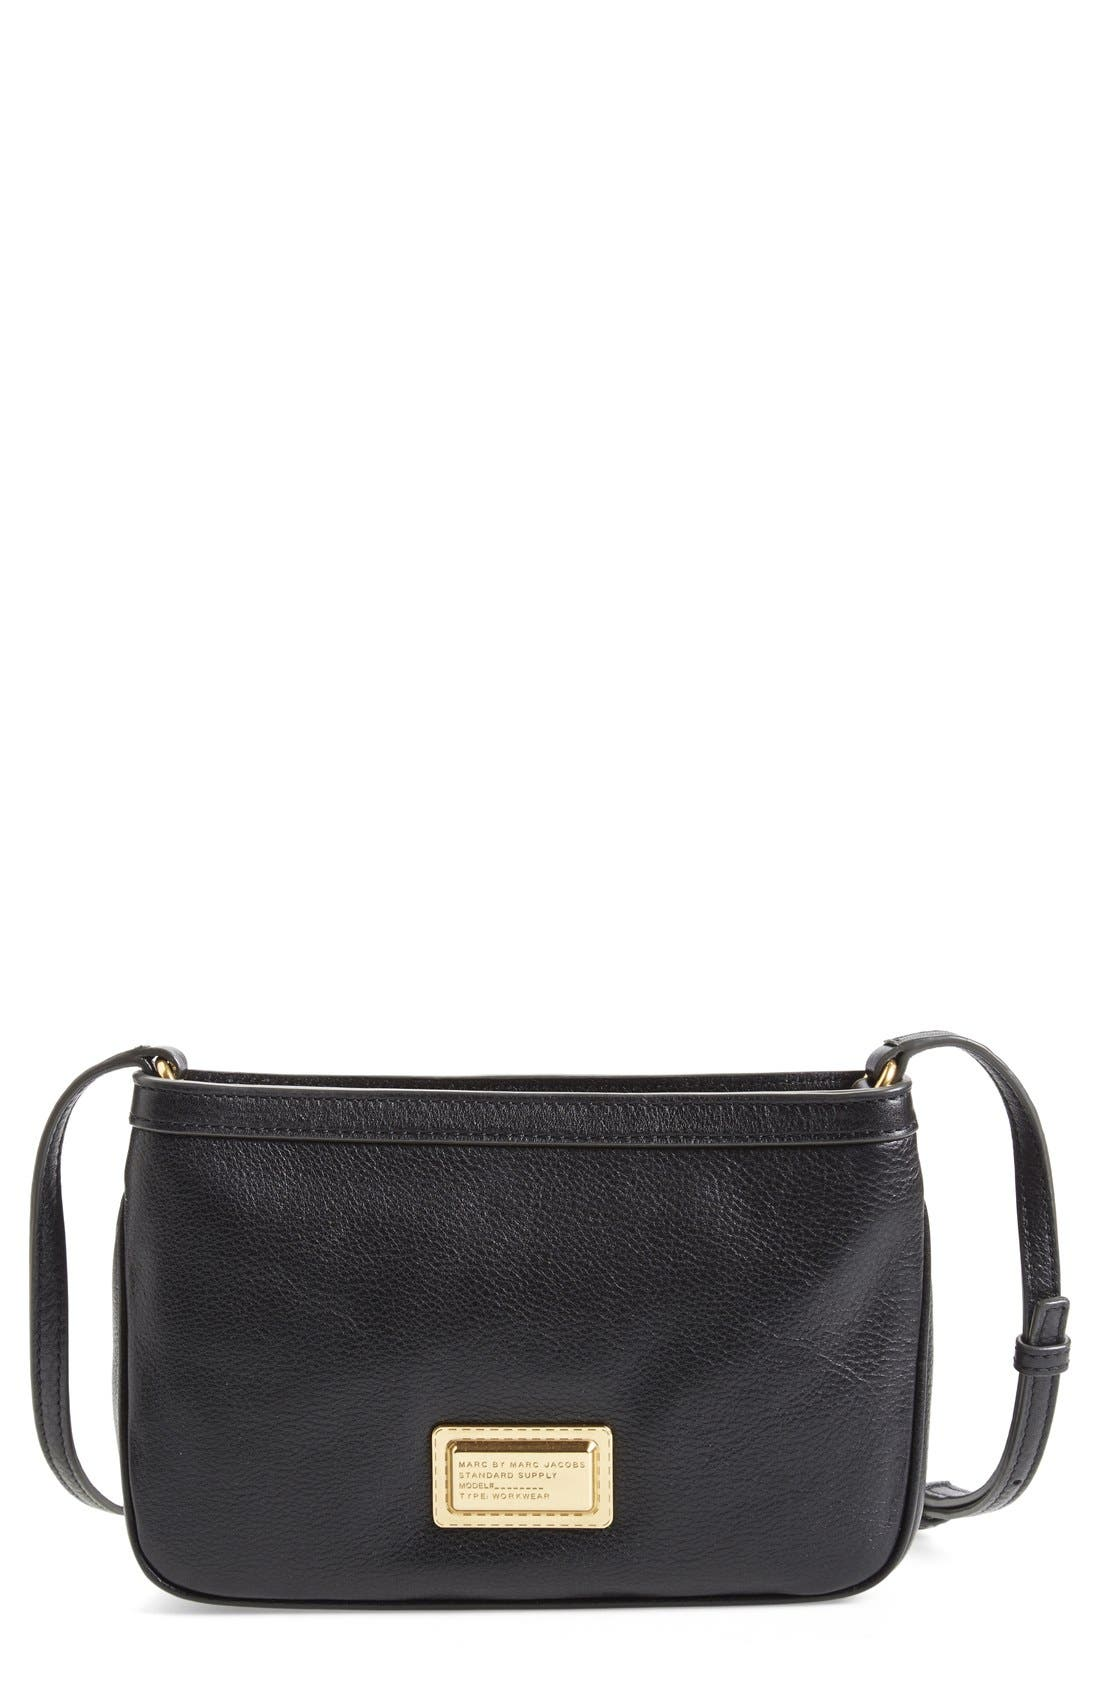 MARC BY MARC JACOBS 'Take Your Marc - Percy' Crossbody Bag,                             Main thumbnail 1, color,